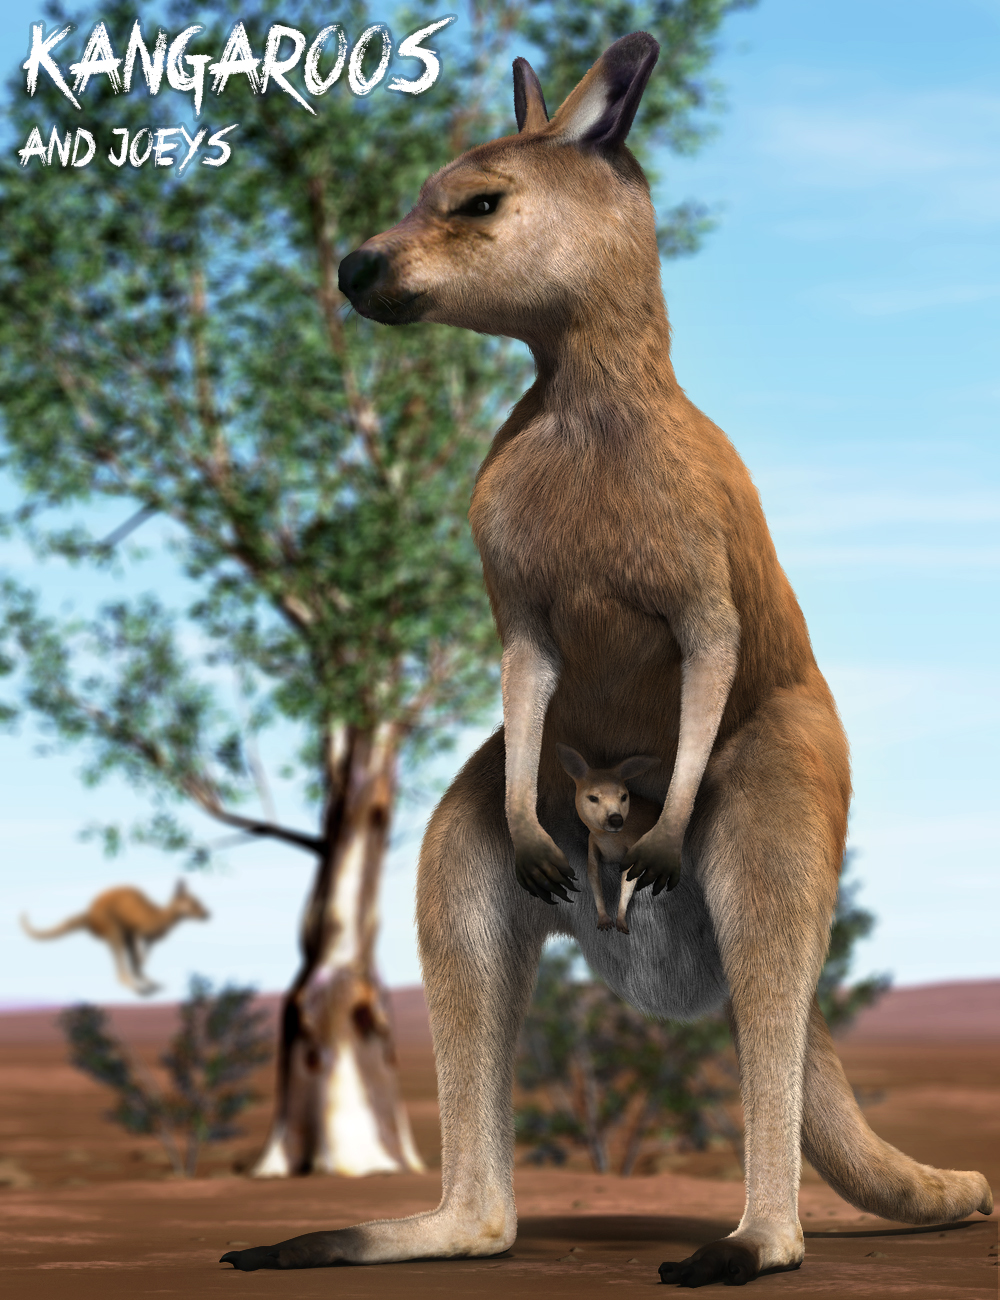 Kangaroos and Joeys by: Alessandro_AM, 3D Models by Daz 3D